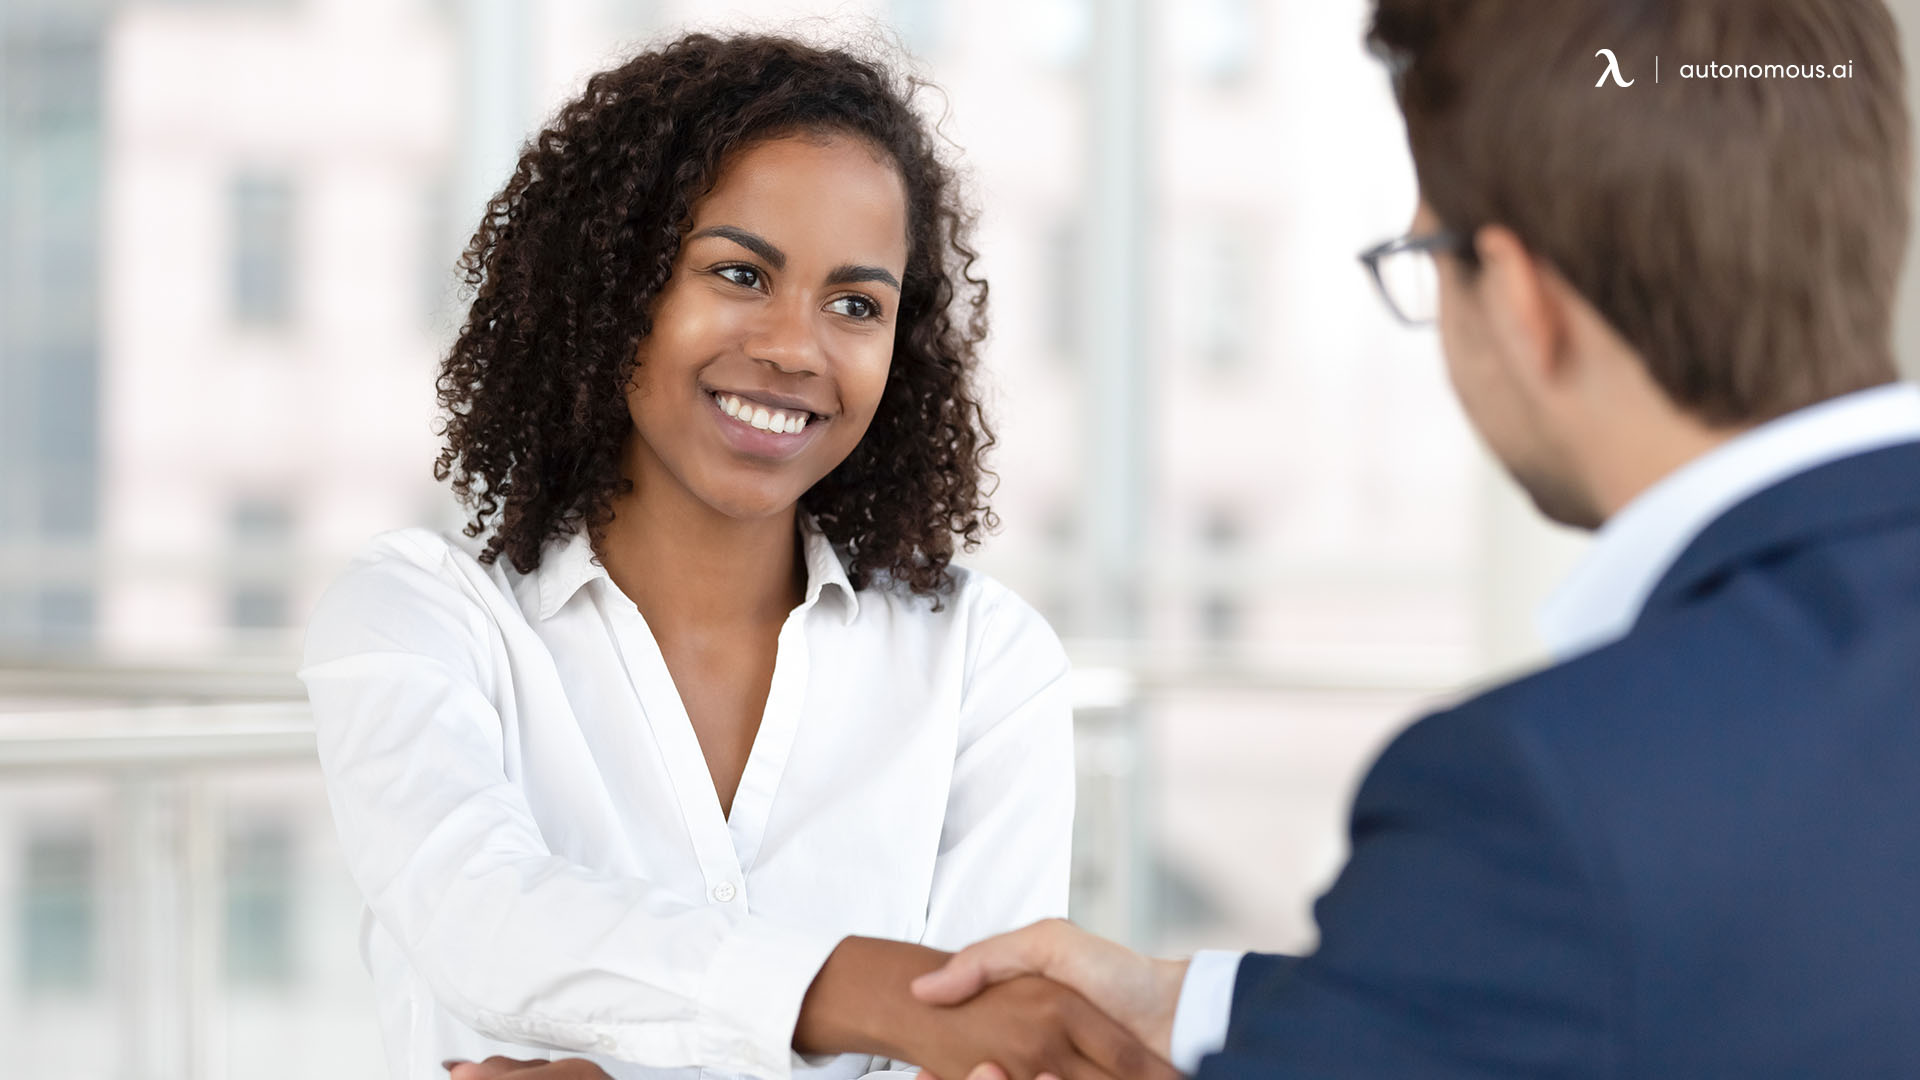 Leave a Positive and Lasting Impression on Your Interviewer